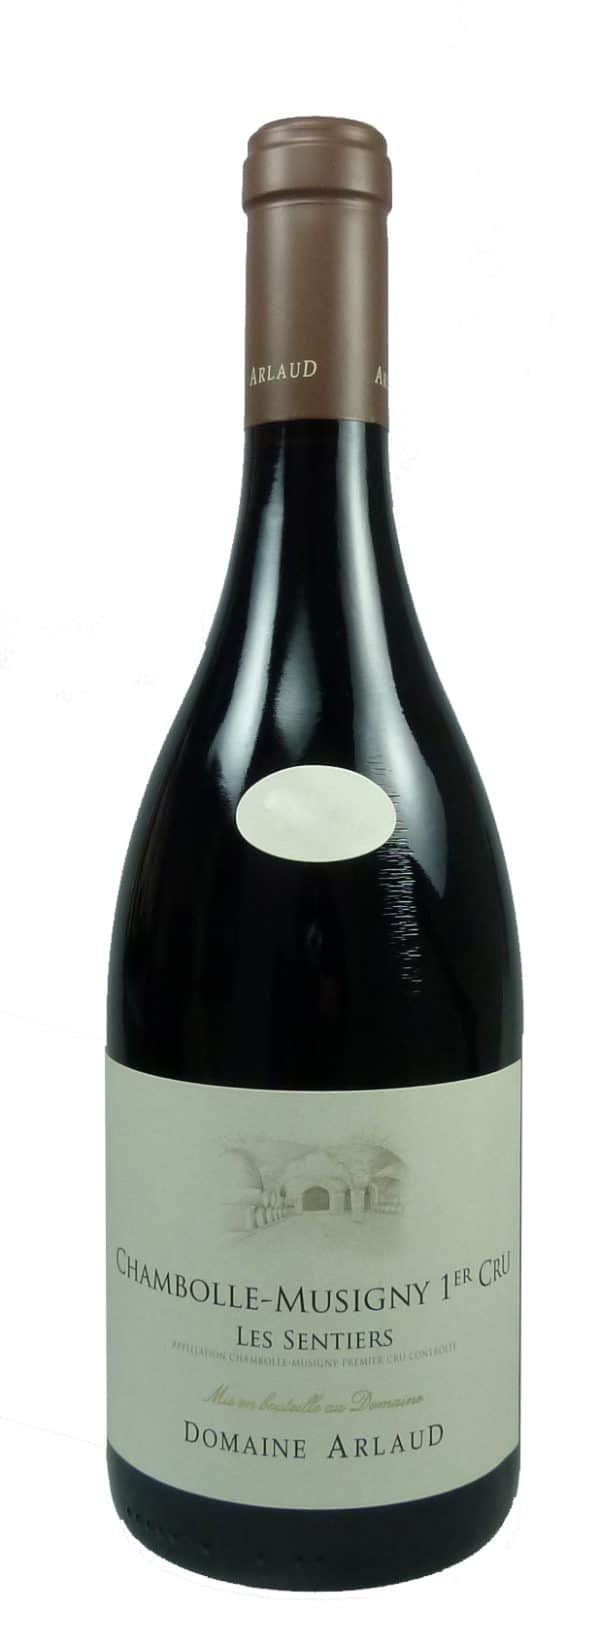 Chambolle-Musigny 1er Cru Les Sentiers 2019 ab Sep lieferbar